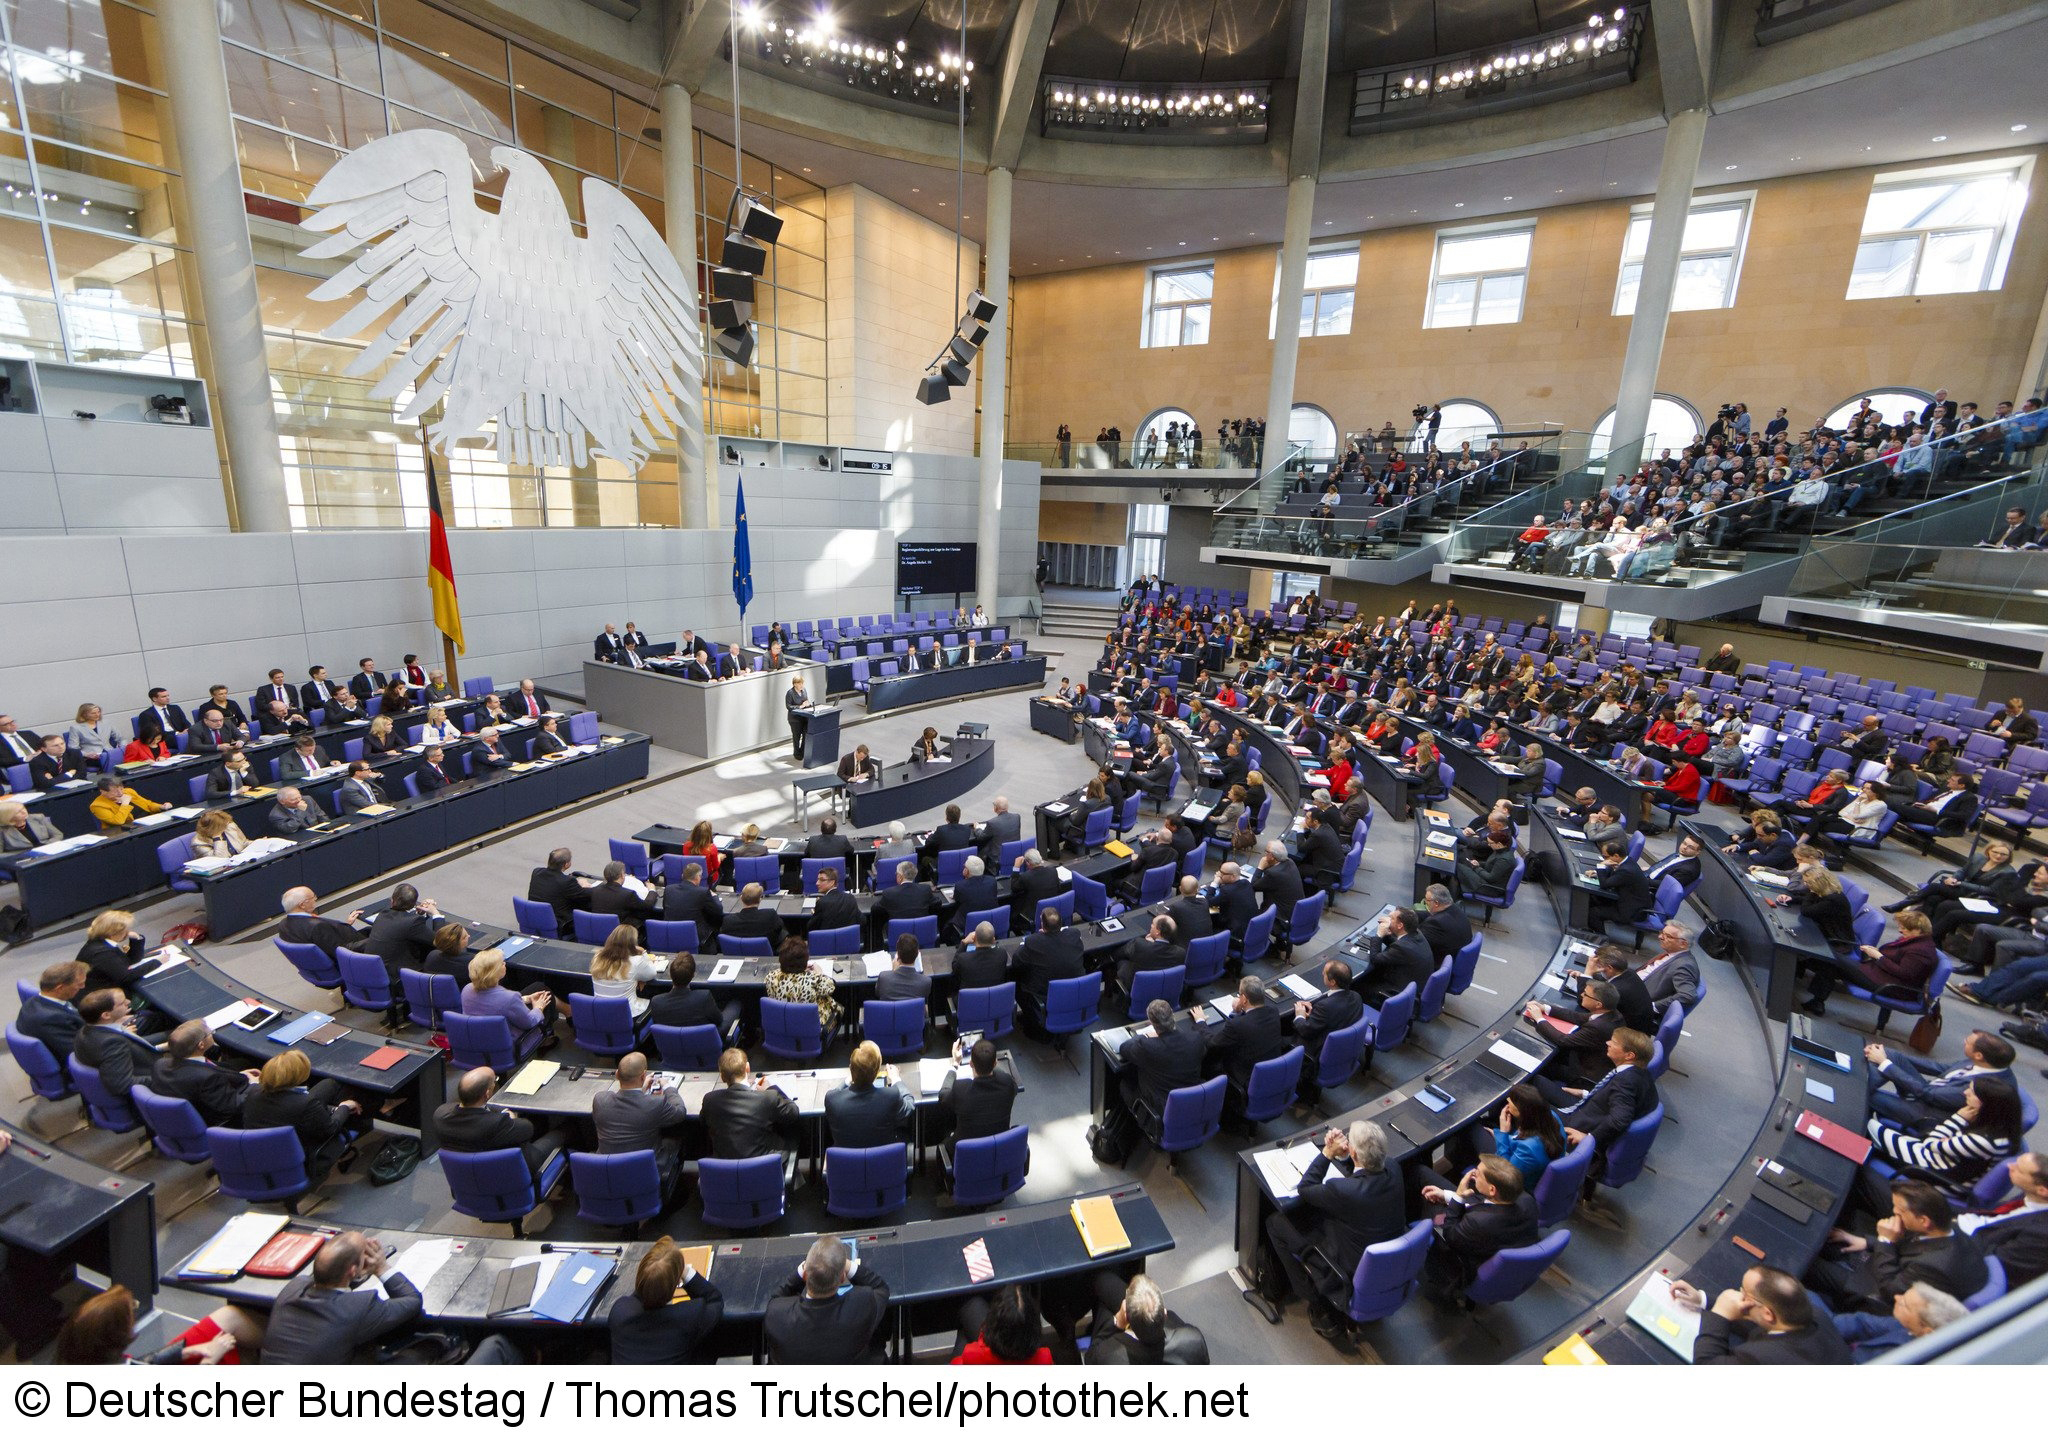 2018 08 StageTec German Bundestag Thomas Trutschel photothek net